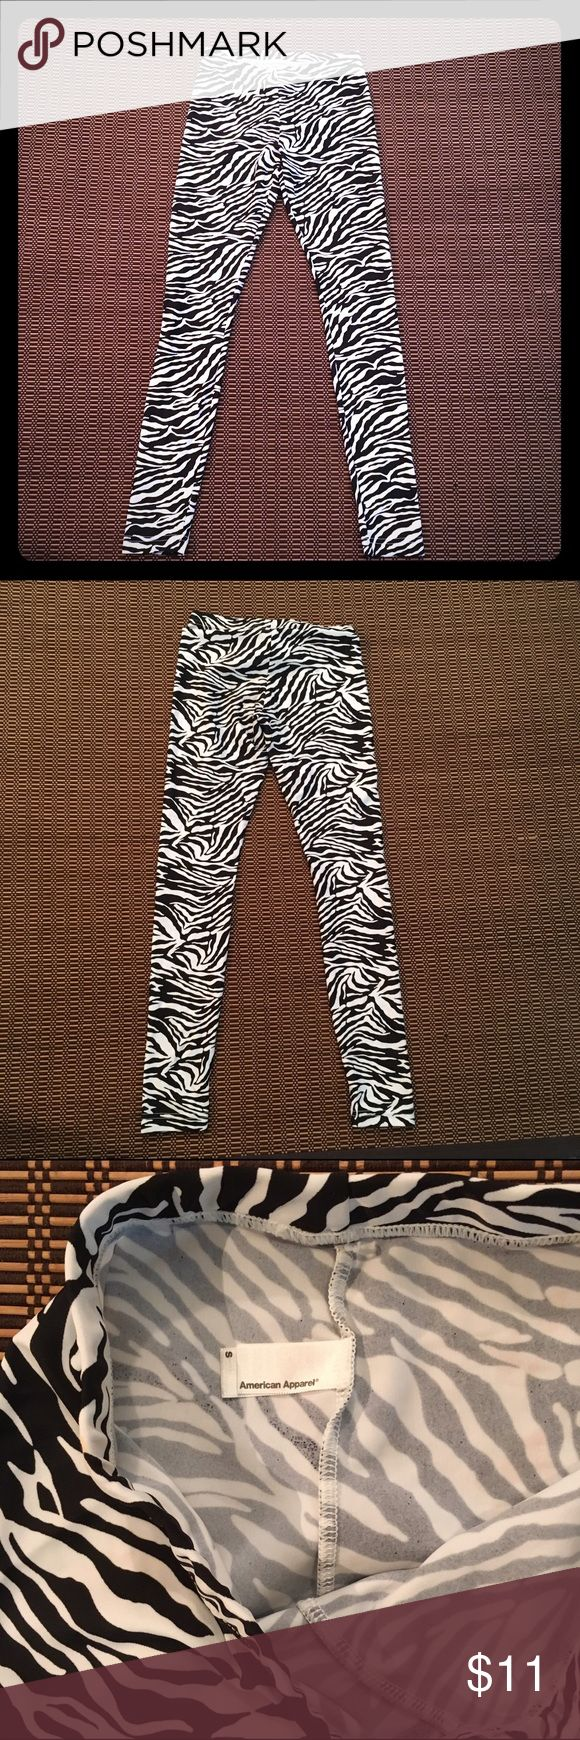 American Apparel Zebra Stripe Leggings Sweet zebra print leggings by American Apparel. Never really worn, not exactly my style. Great condition. Been living in my closet. American Apparel Pants Leggings